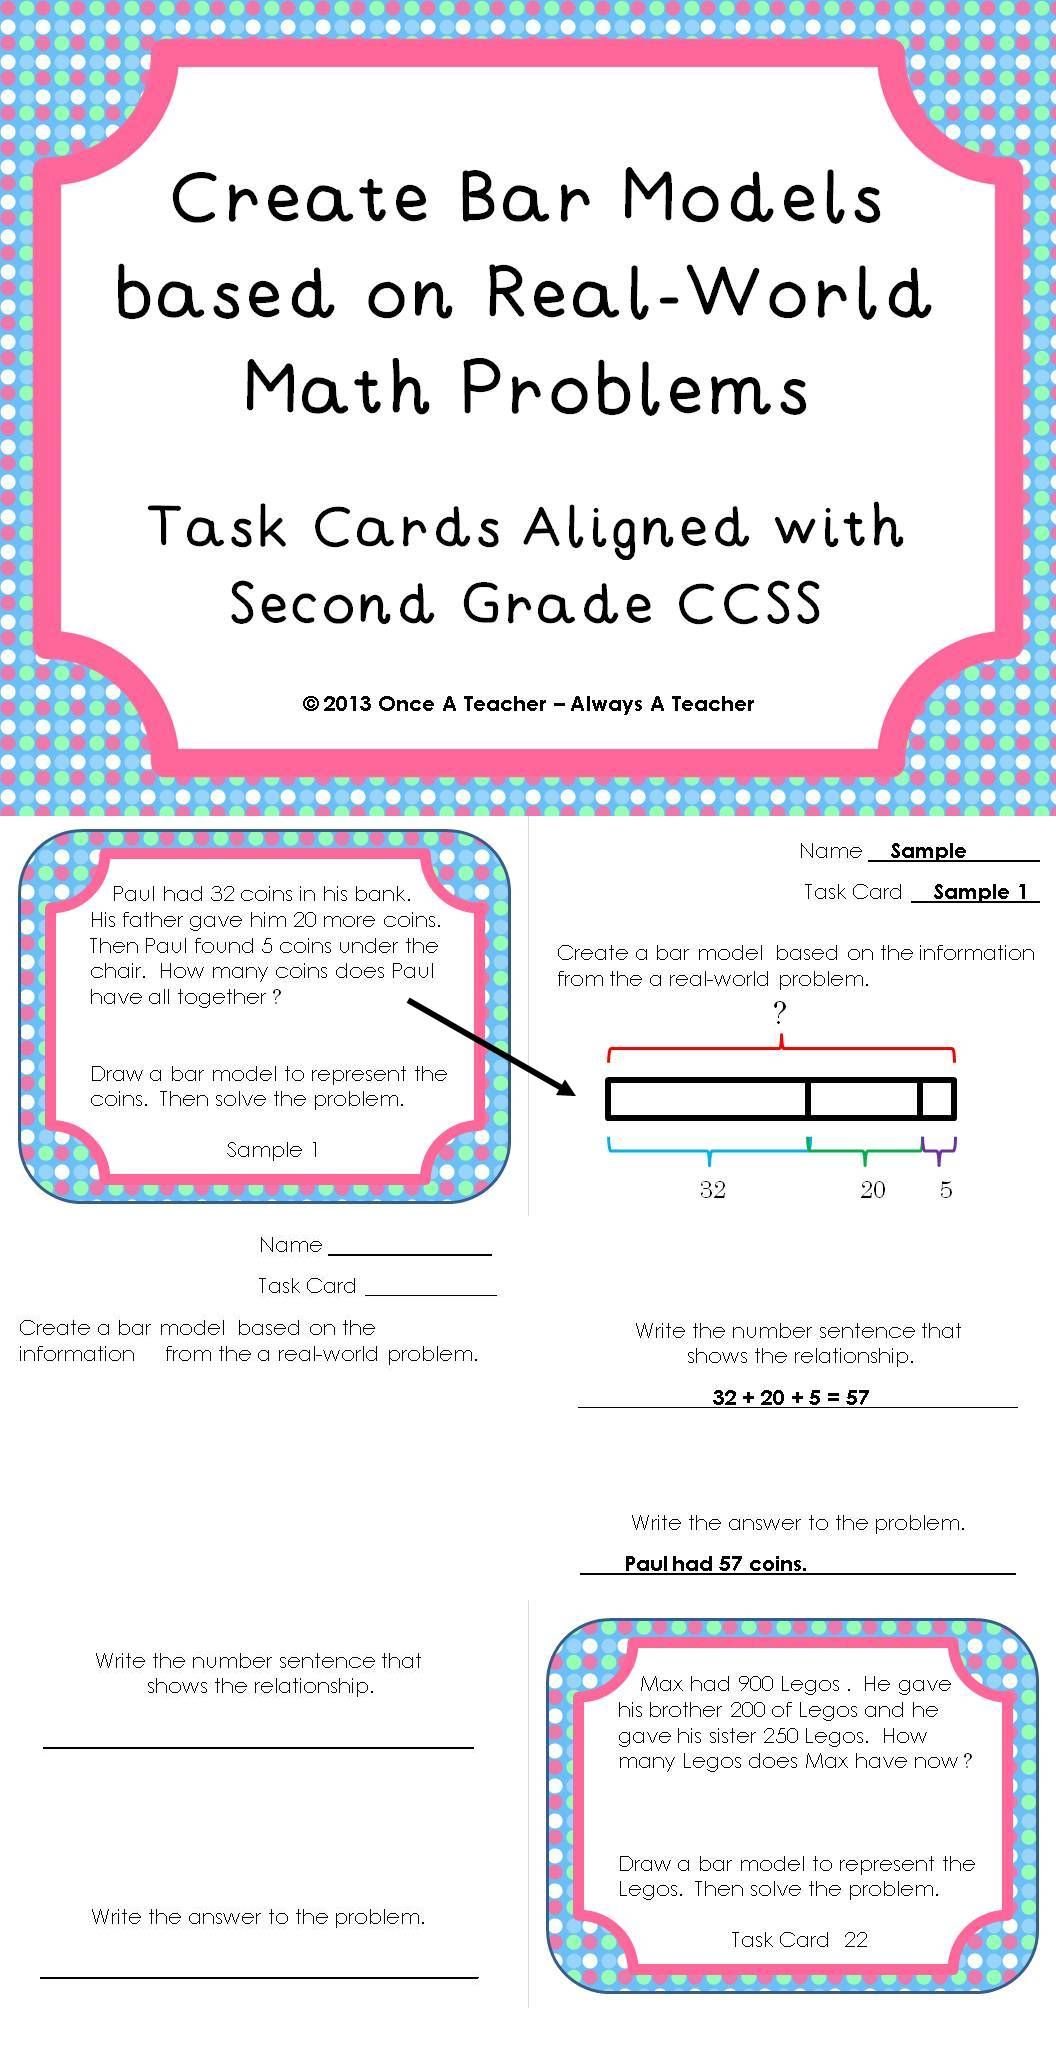 Create Bar Models based on Real-World Math Problems - Task Cards ...